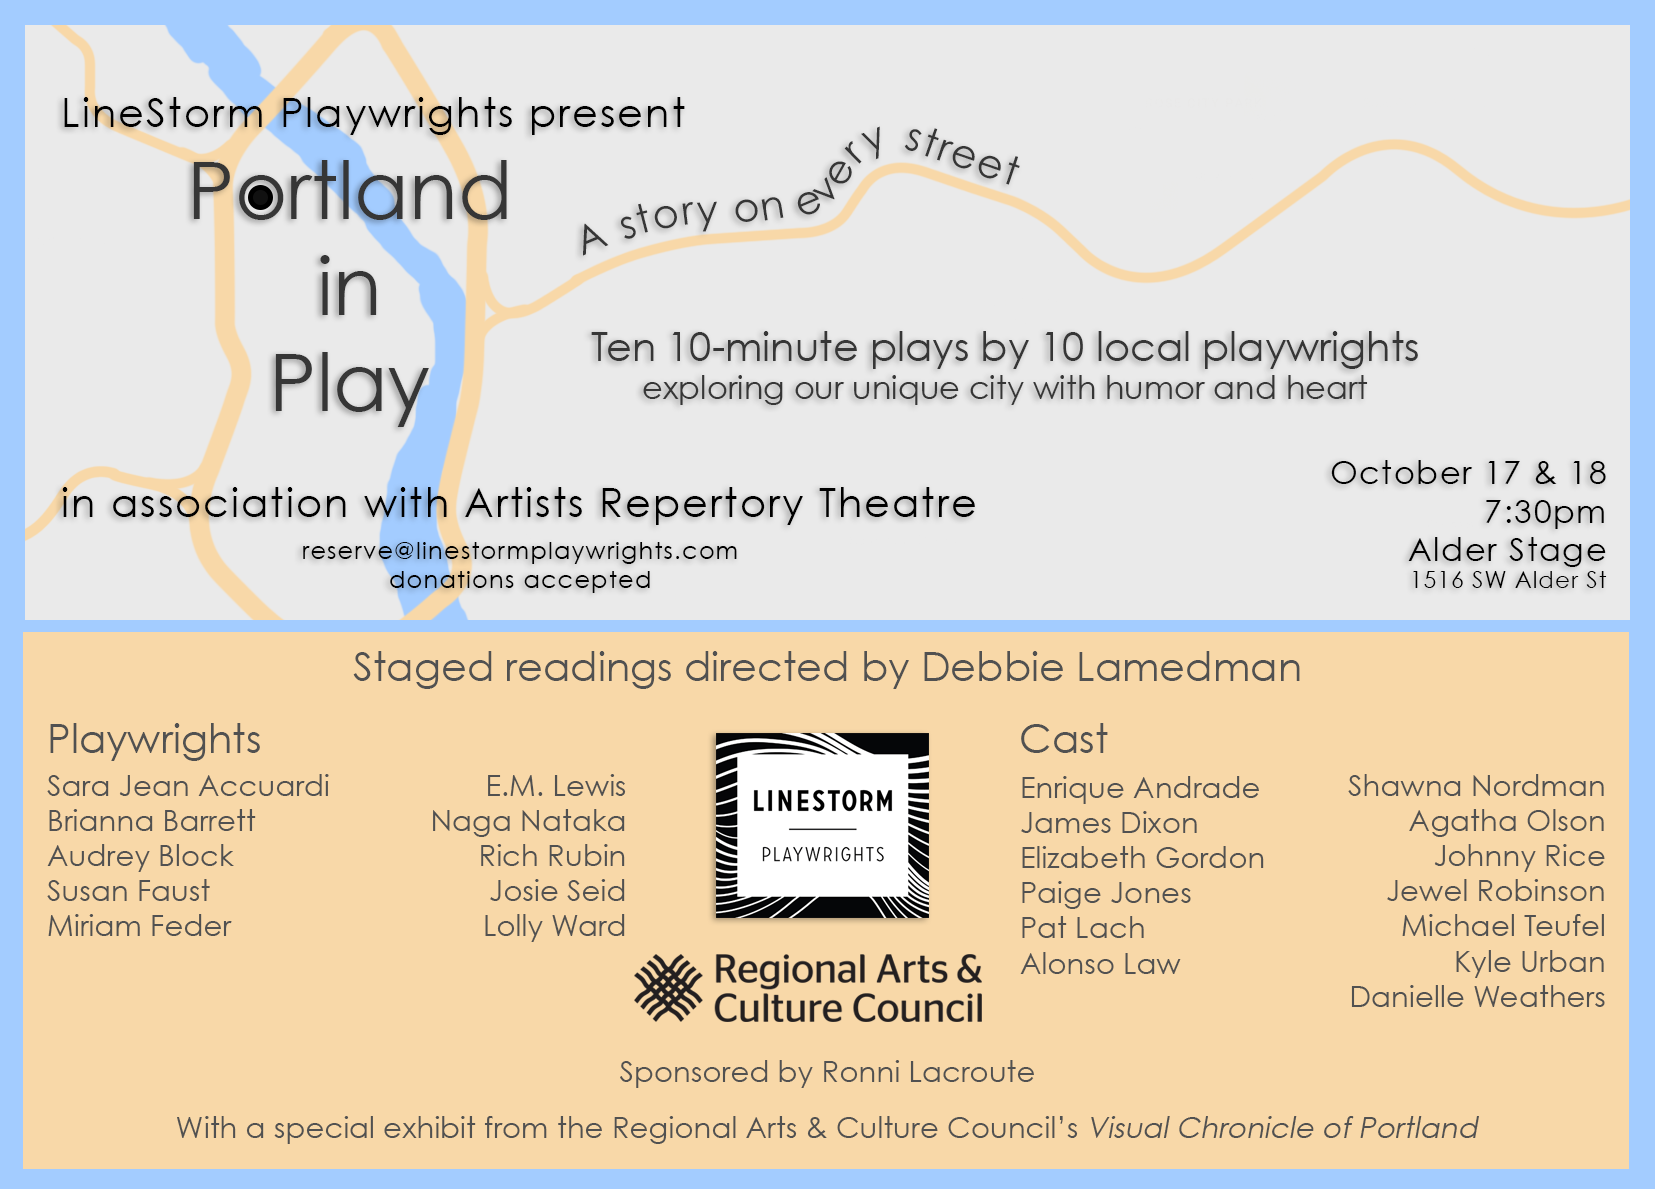 portland-in-play-e-card-1